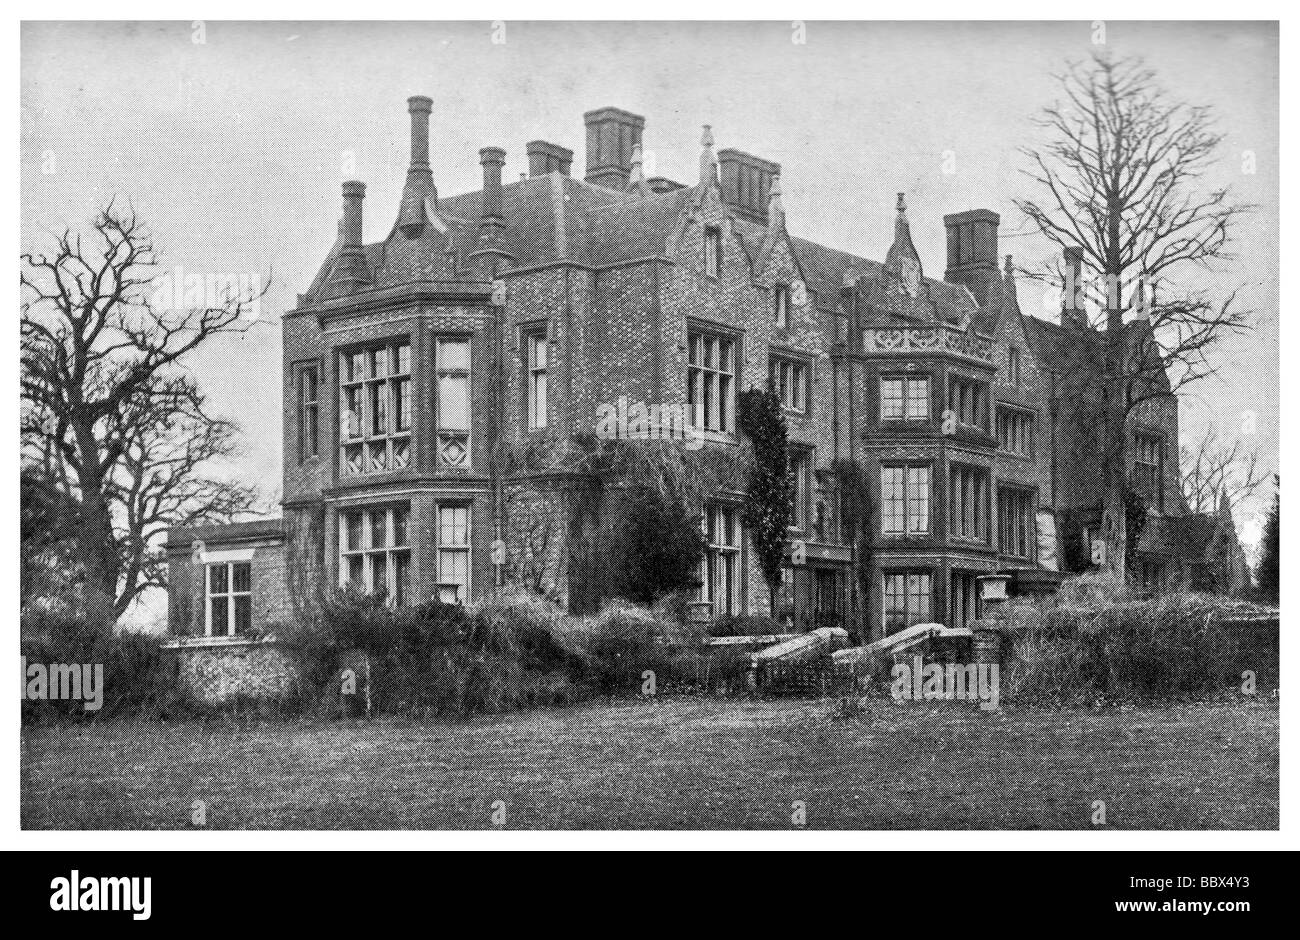 Embley Park In Romsey Hampshire England Photographed C1910